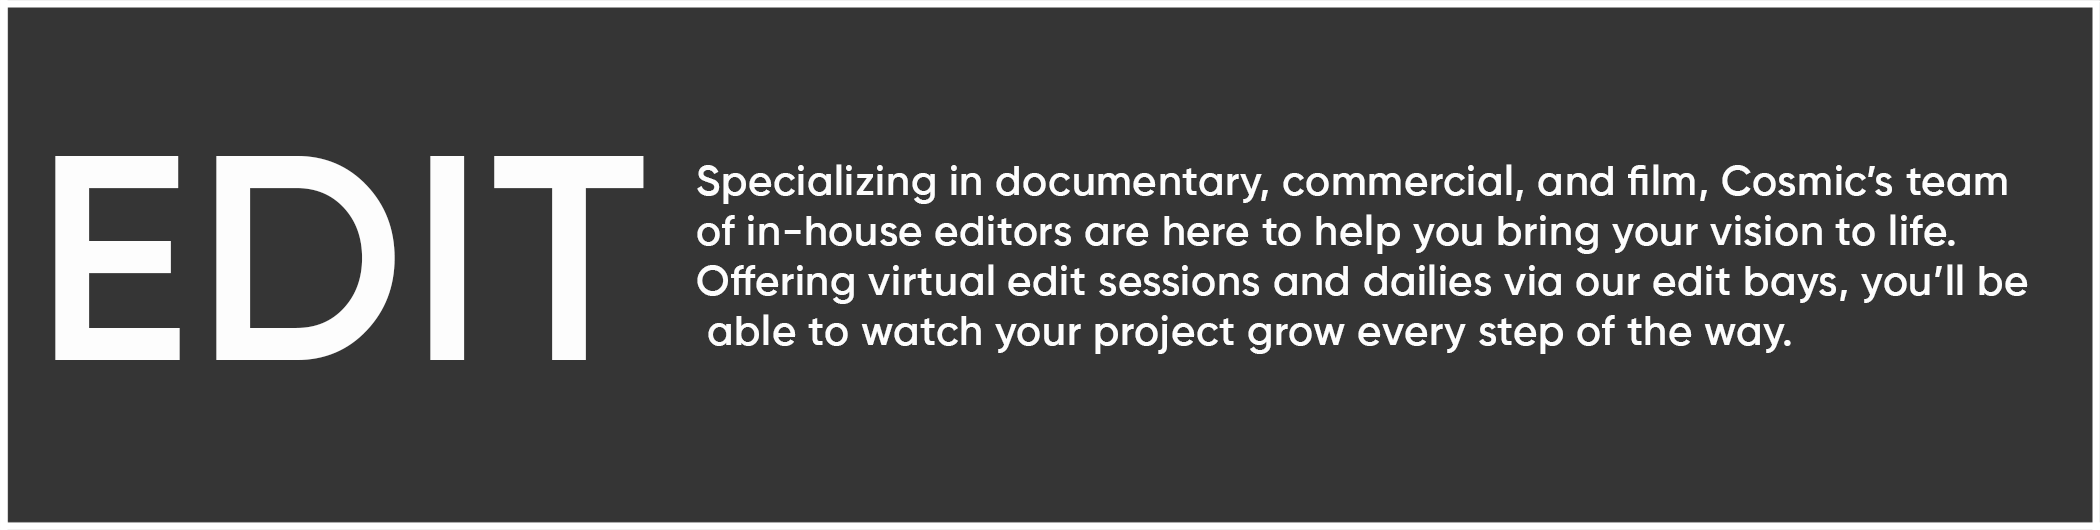 Specializing in documentary, commercial, and film, Cosmic's team  of in-house editors are here to help you bring your vision to life.  Offering virtual edit sessions and dailies via our edit bays, you'll be  able to watch your project grow every step of the way.